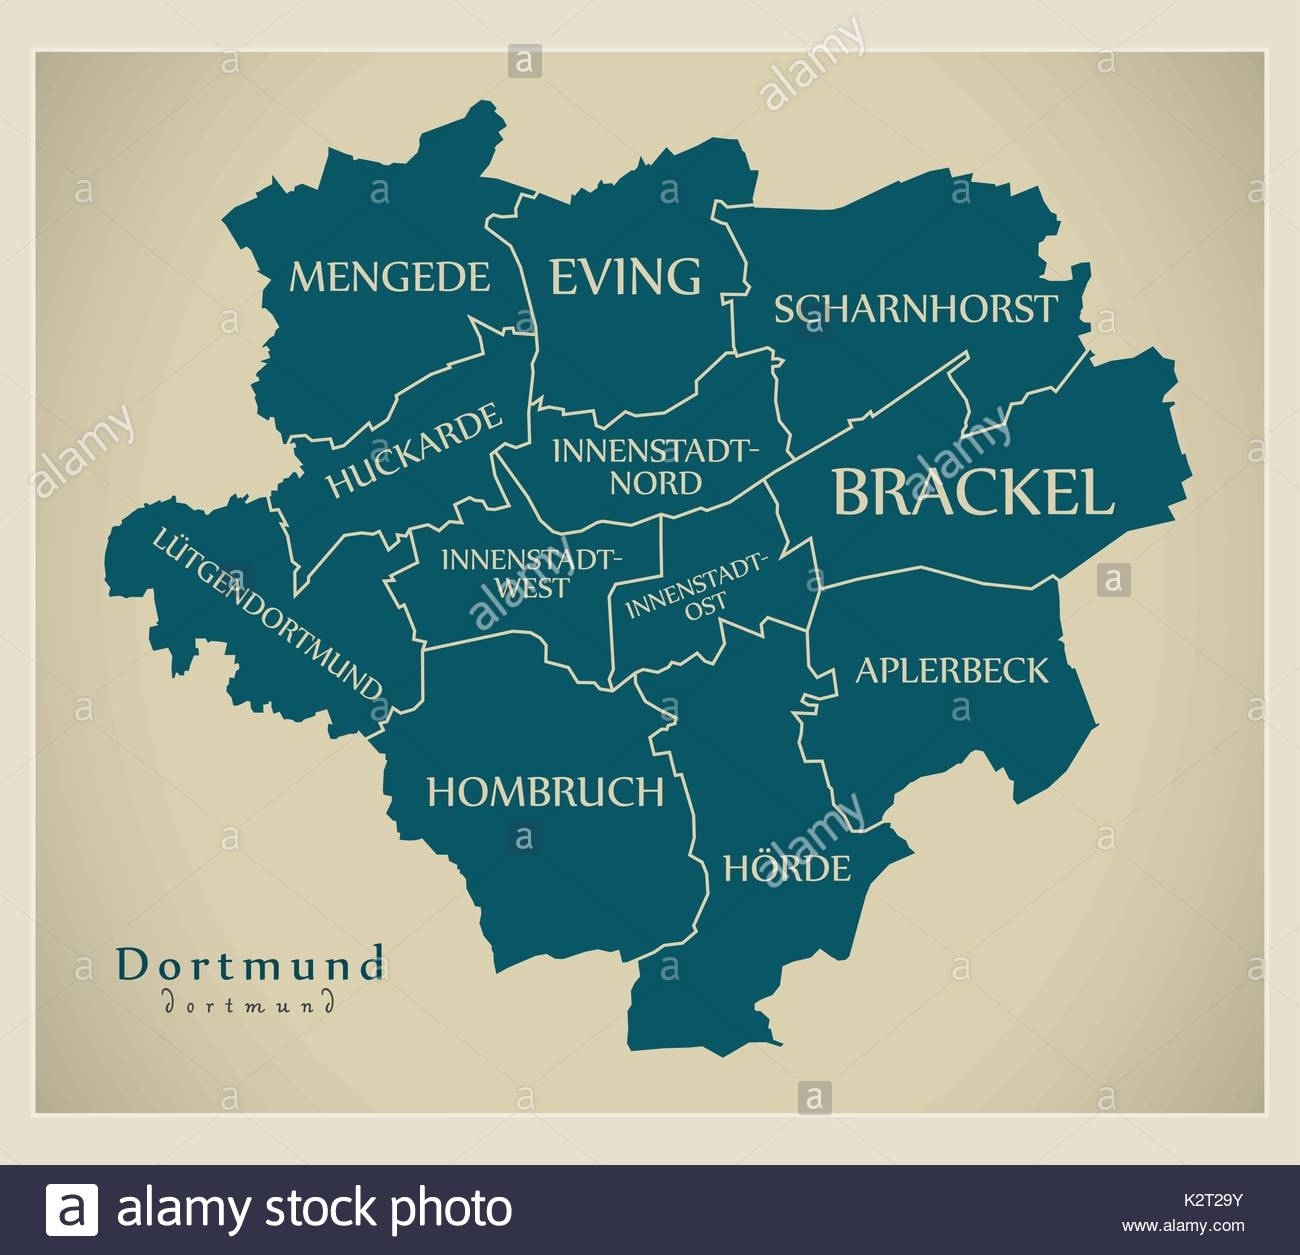 Modern City Map - Dortmund City Of Germany With Boroughs And Titles inside Map Of Germany Showing Dortmund